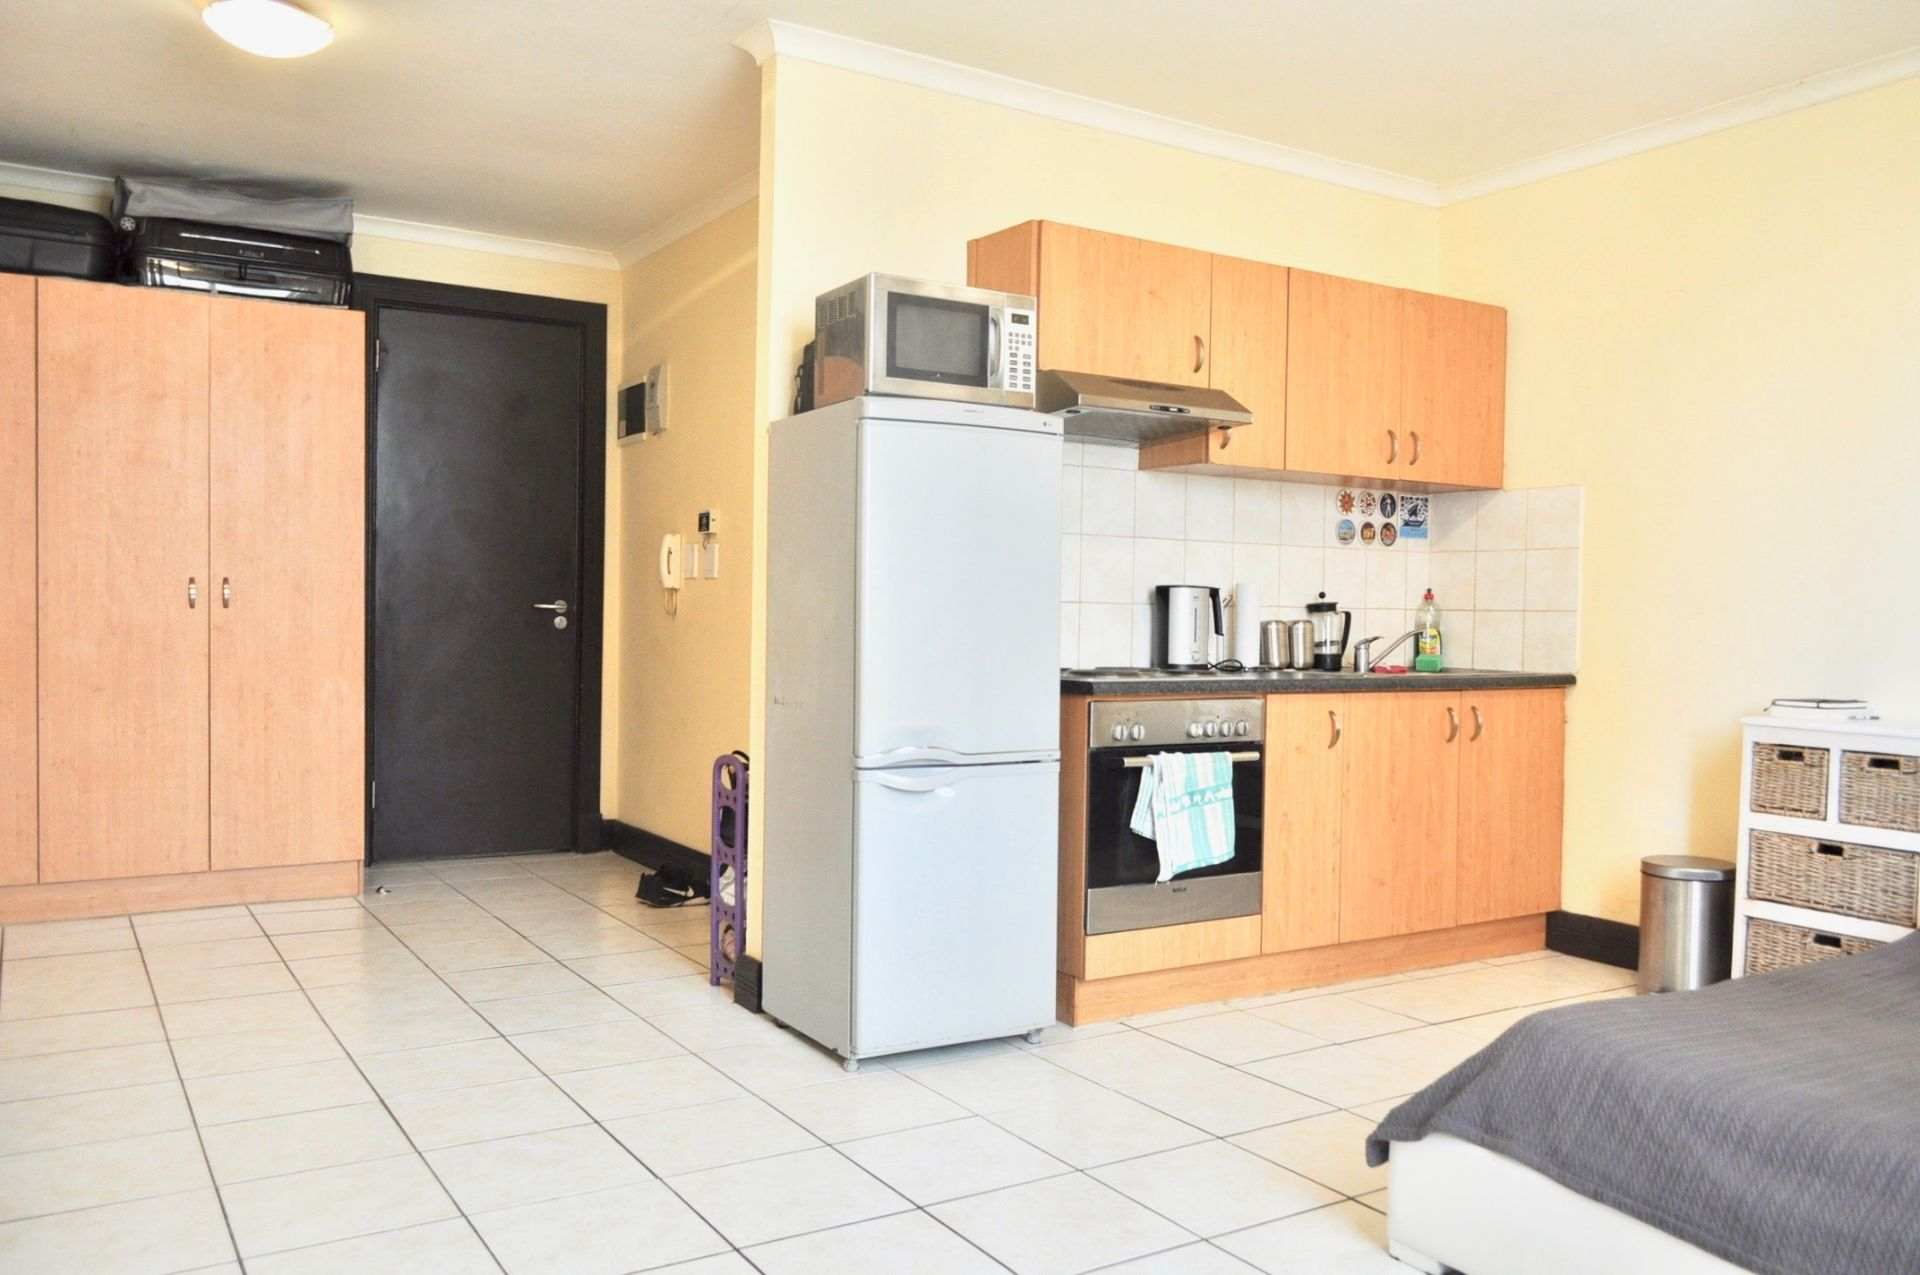 Apartment in City Centre - Entrance way/kitchen 3